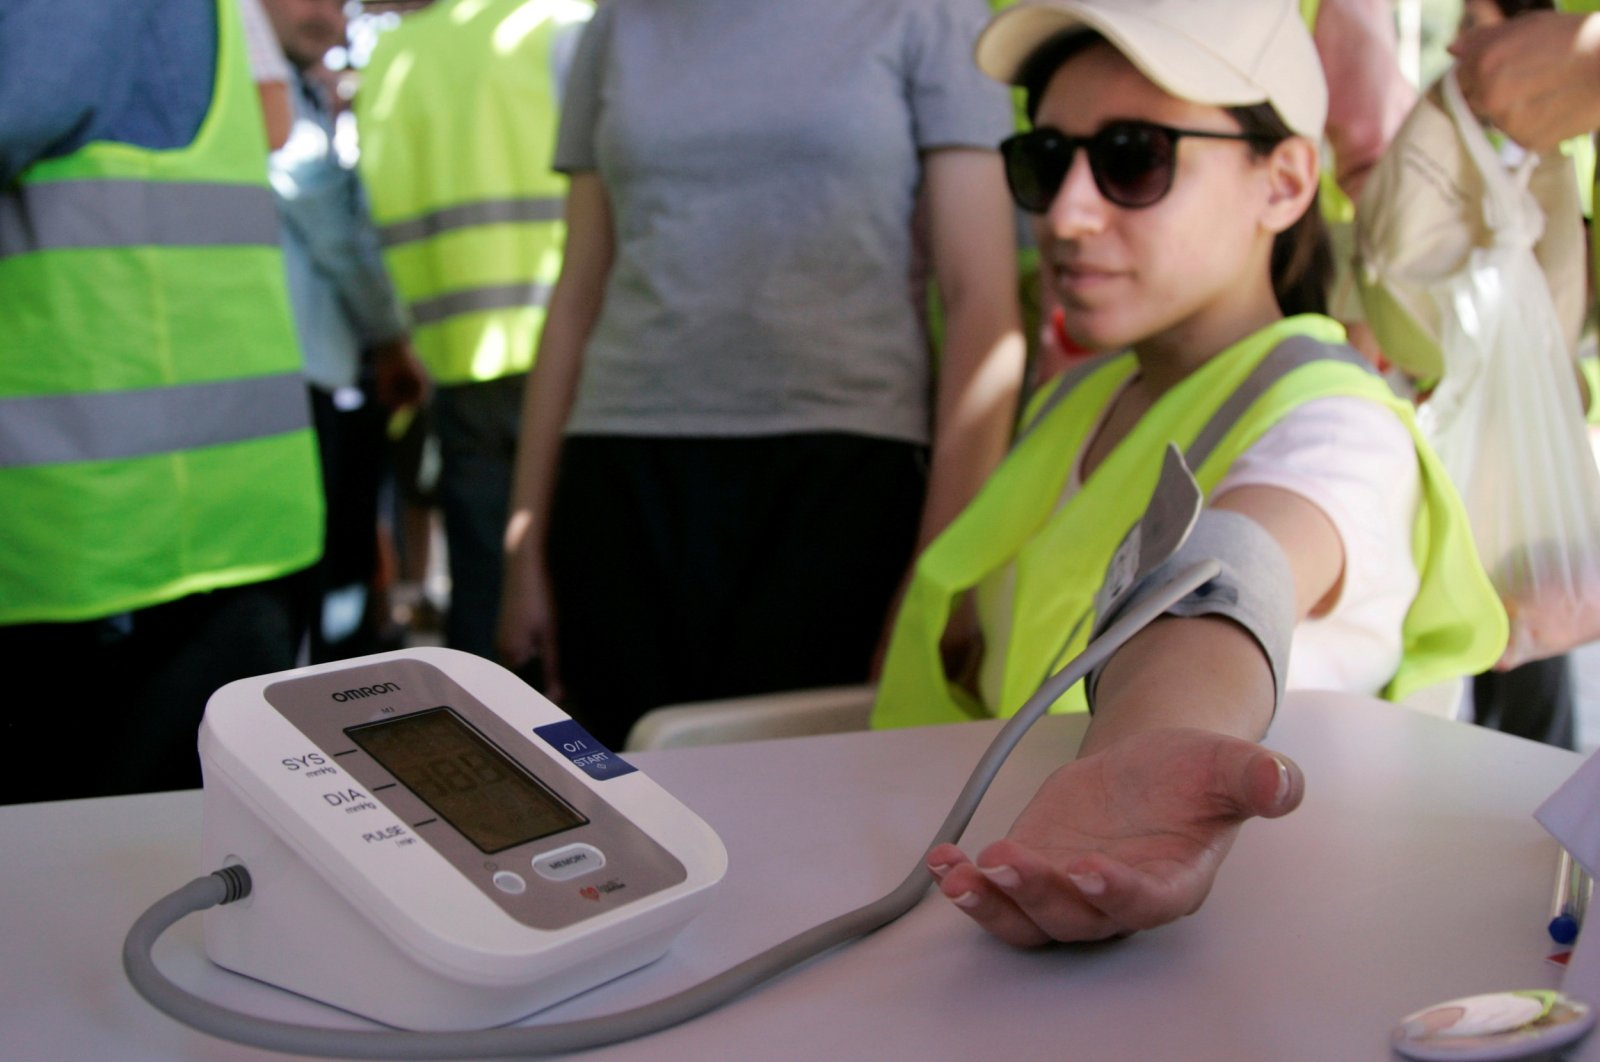 A woman has her blood pressure taken at a World Hypertension Day event in Amman, Jordan, May 14, 2010. (Reuters Photo)